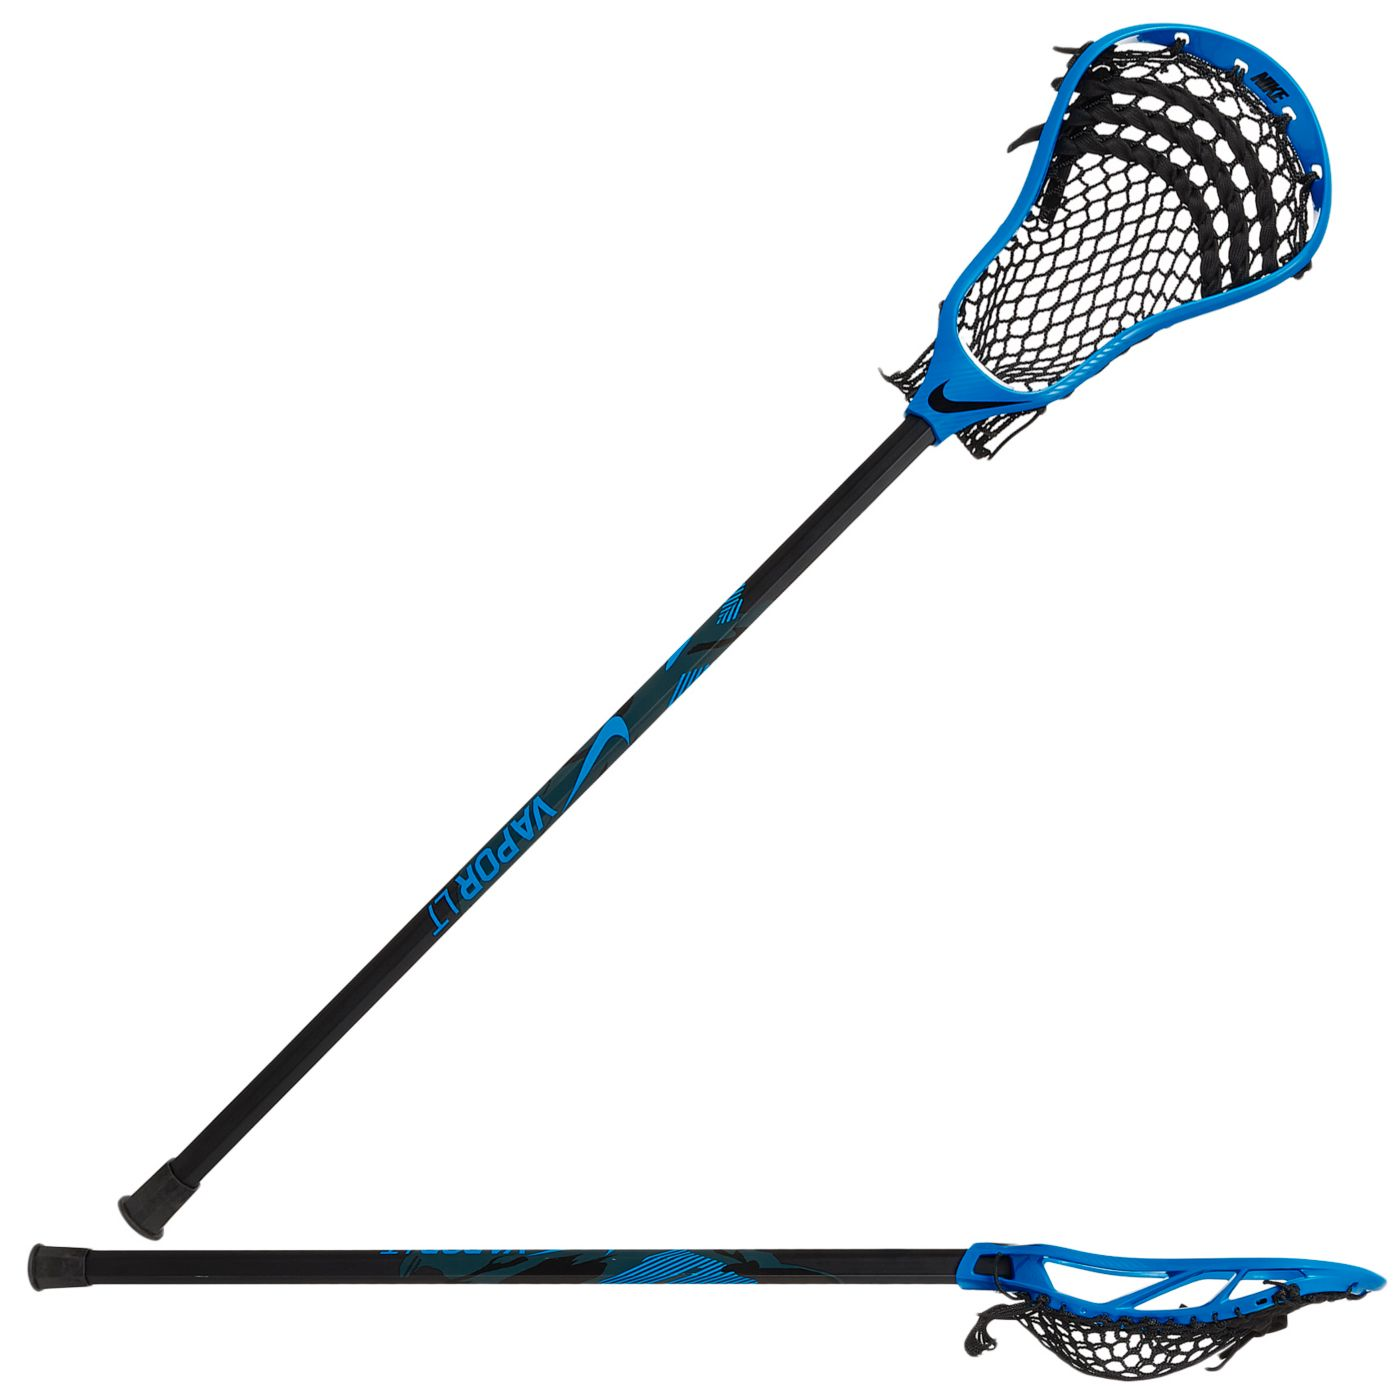 Nike Men's Vapor LT on Vapor 6000 Lacrosse Stick